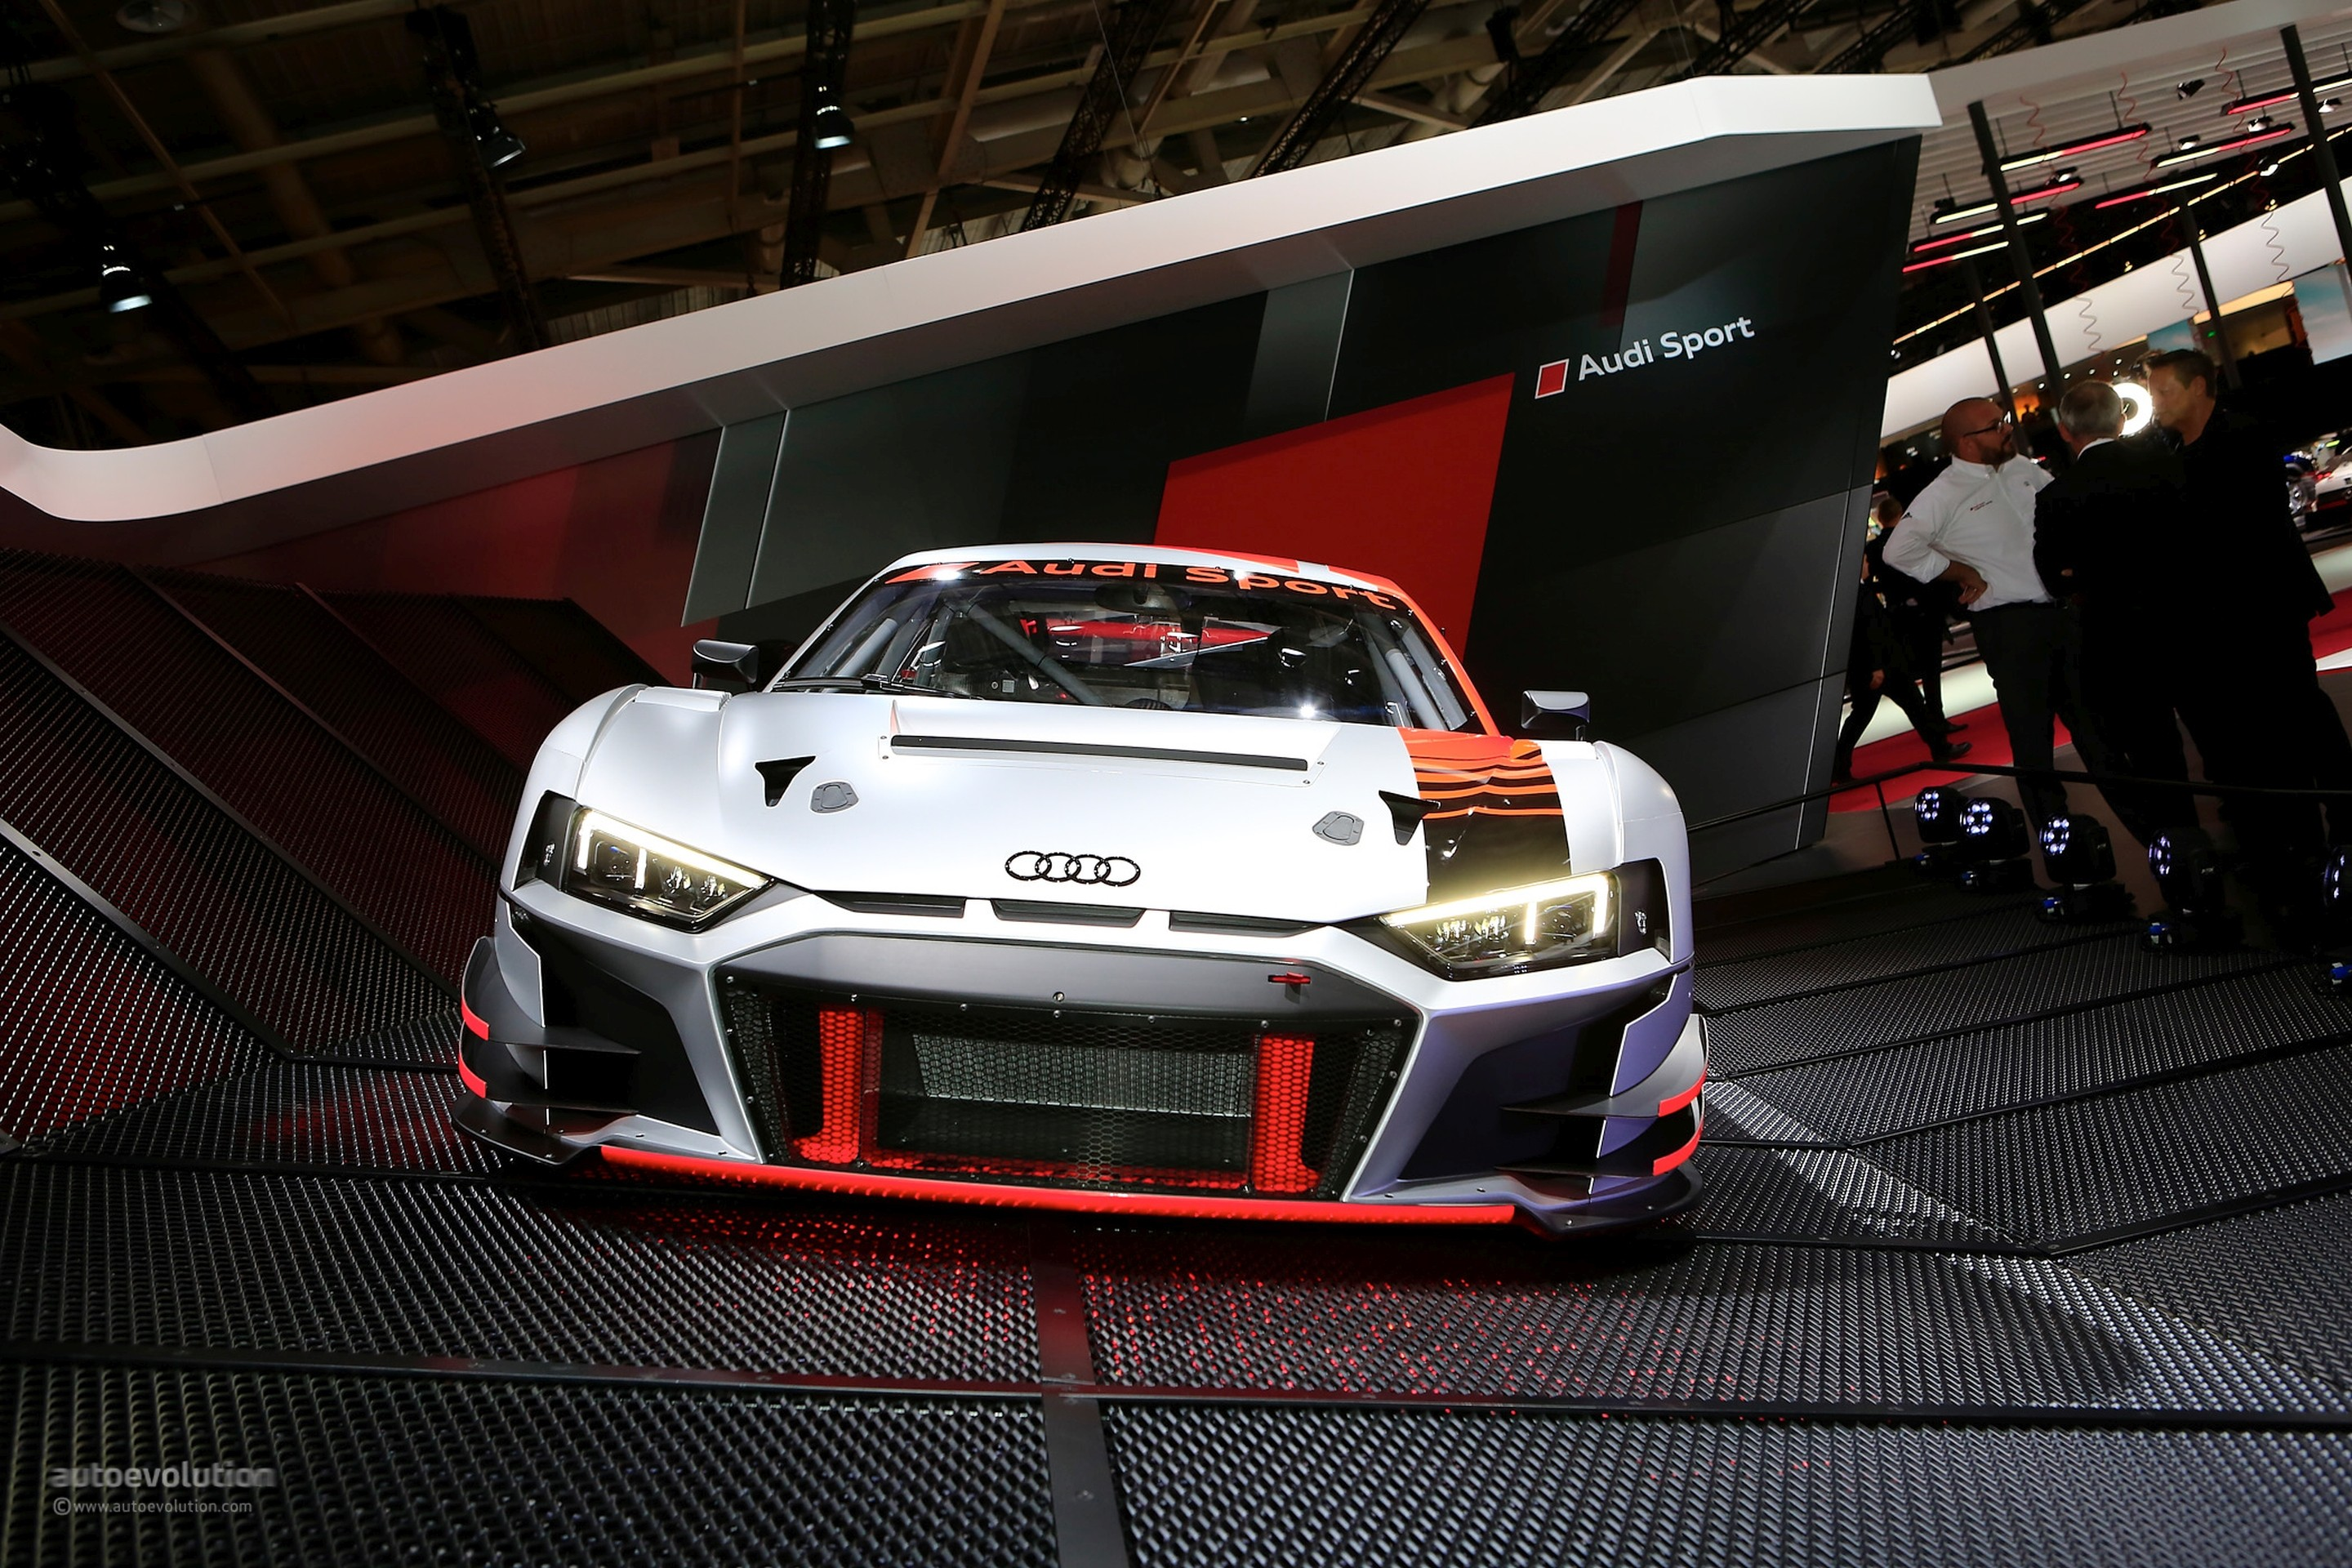 2019 Audi R8 Lms Gt3 Racecar Costs 458 000 But You Can Have It For